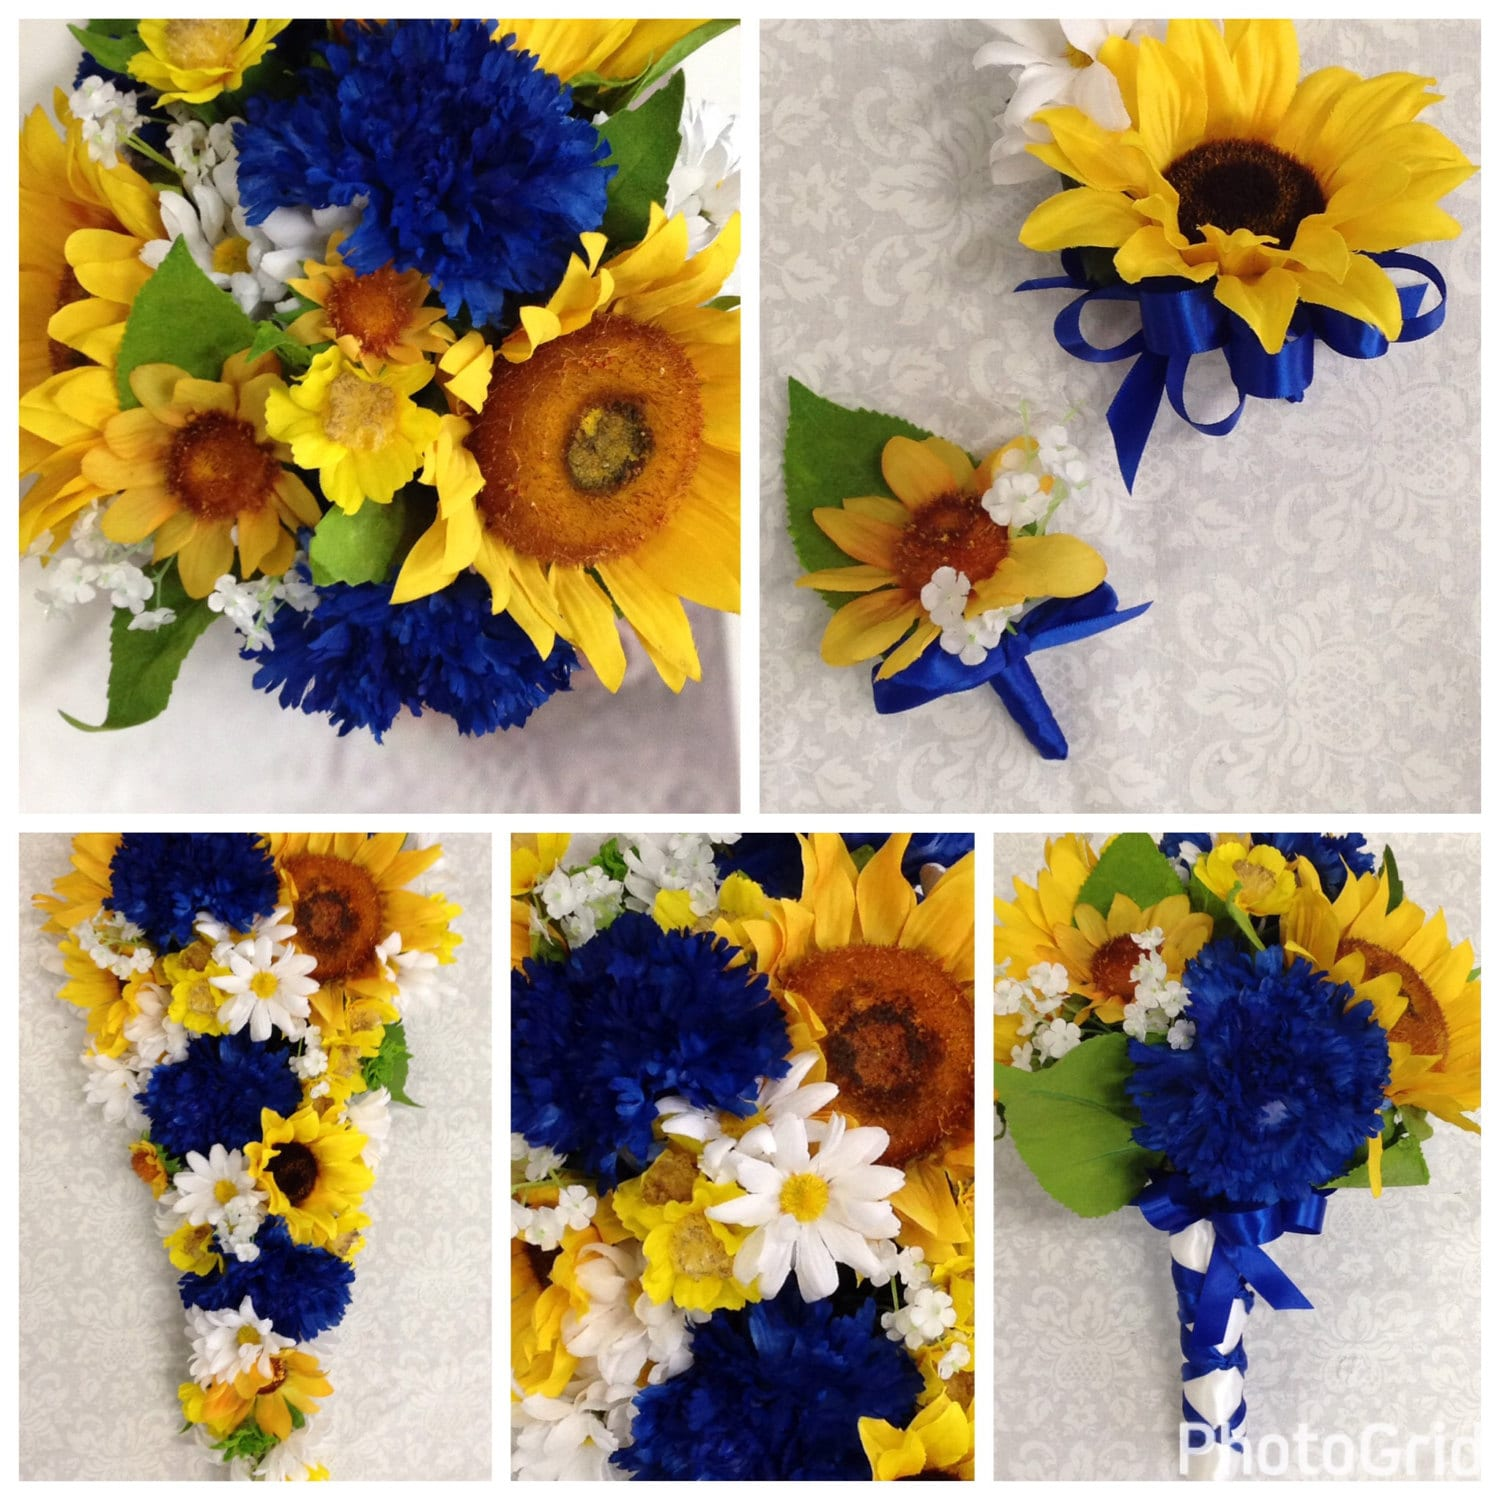 Artificial horizon blue sunflower wedding bouquet set sunflower artificial horizon blue sunflower wedding bouquet set sunflower country wedding flowers junglespirit Images